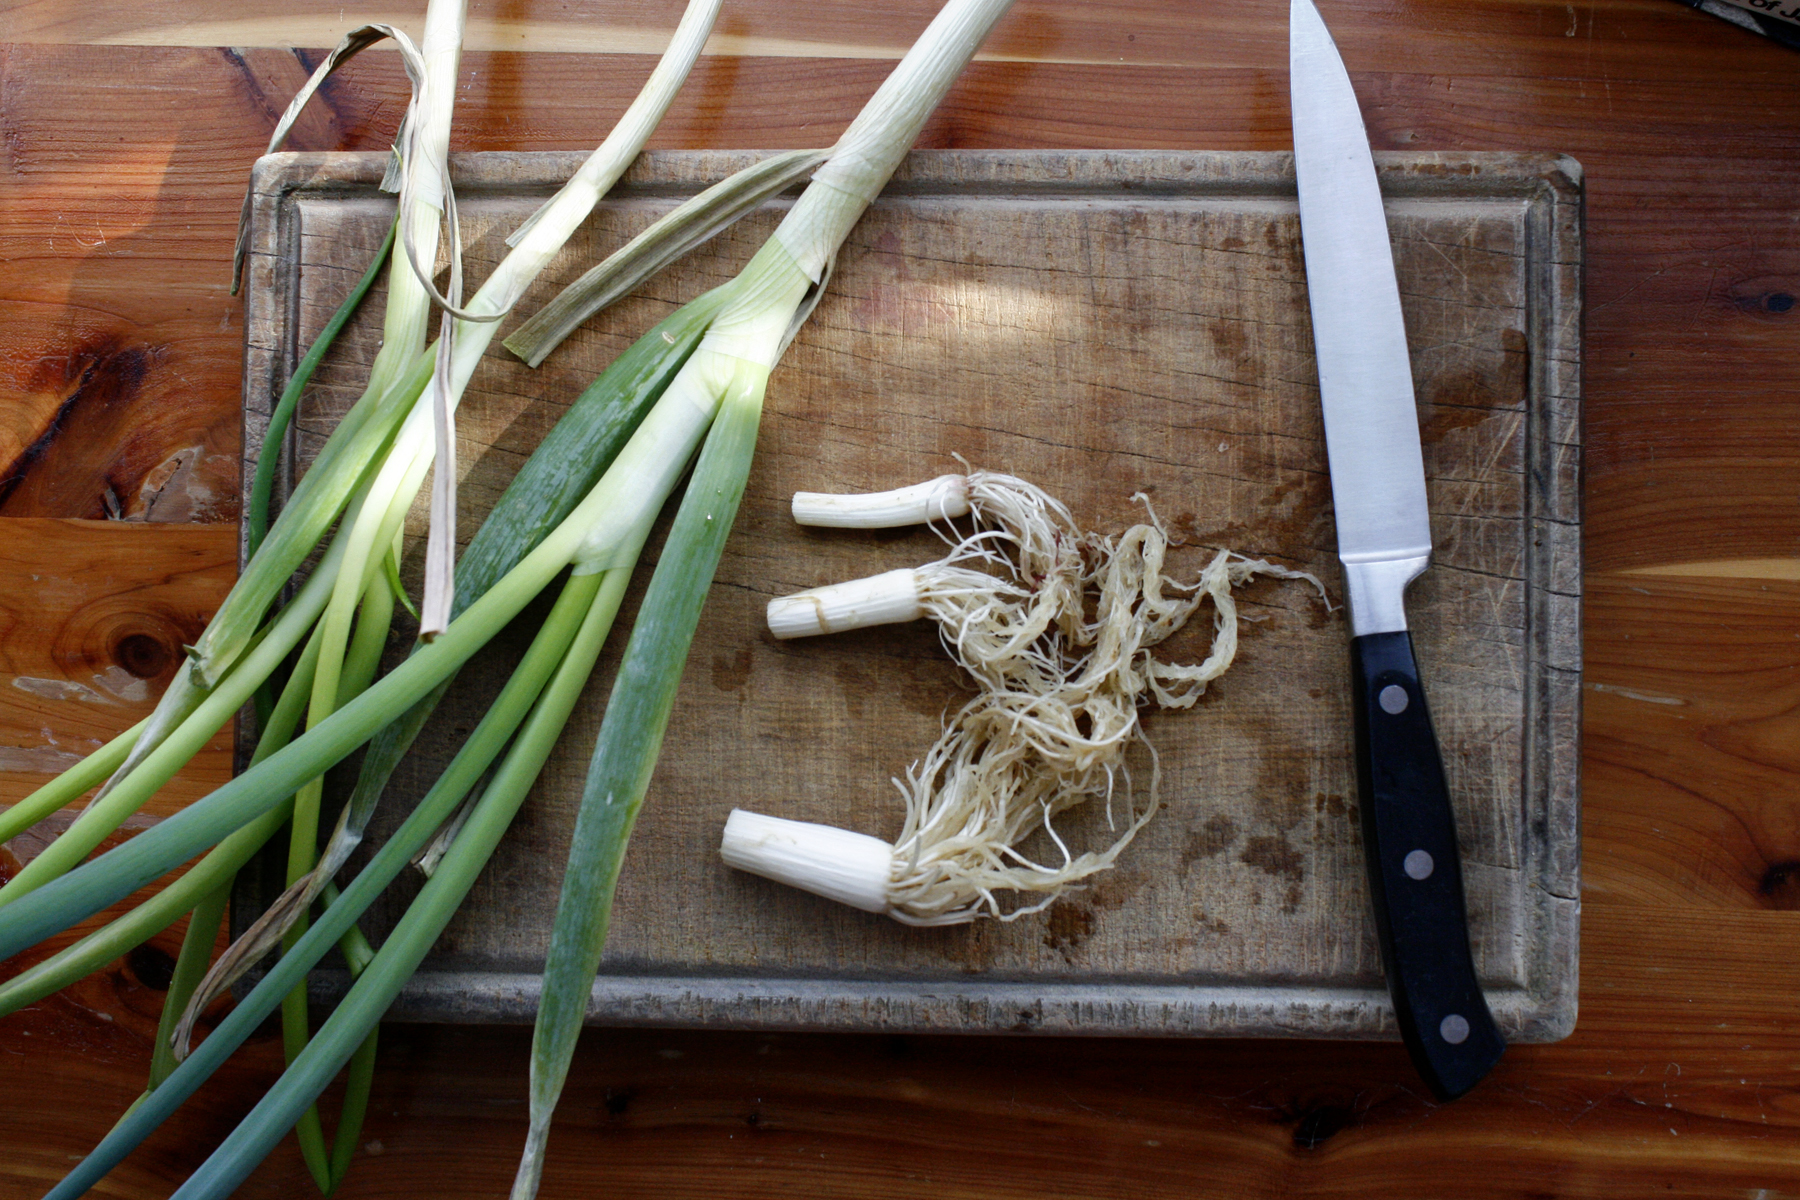 How to re-grow spring onions